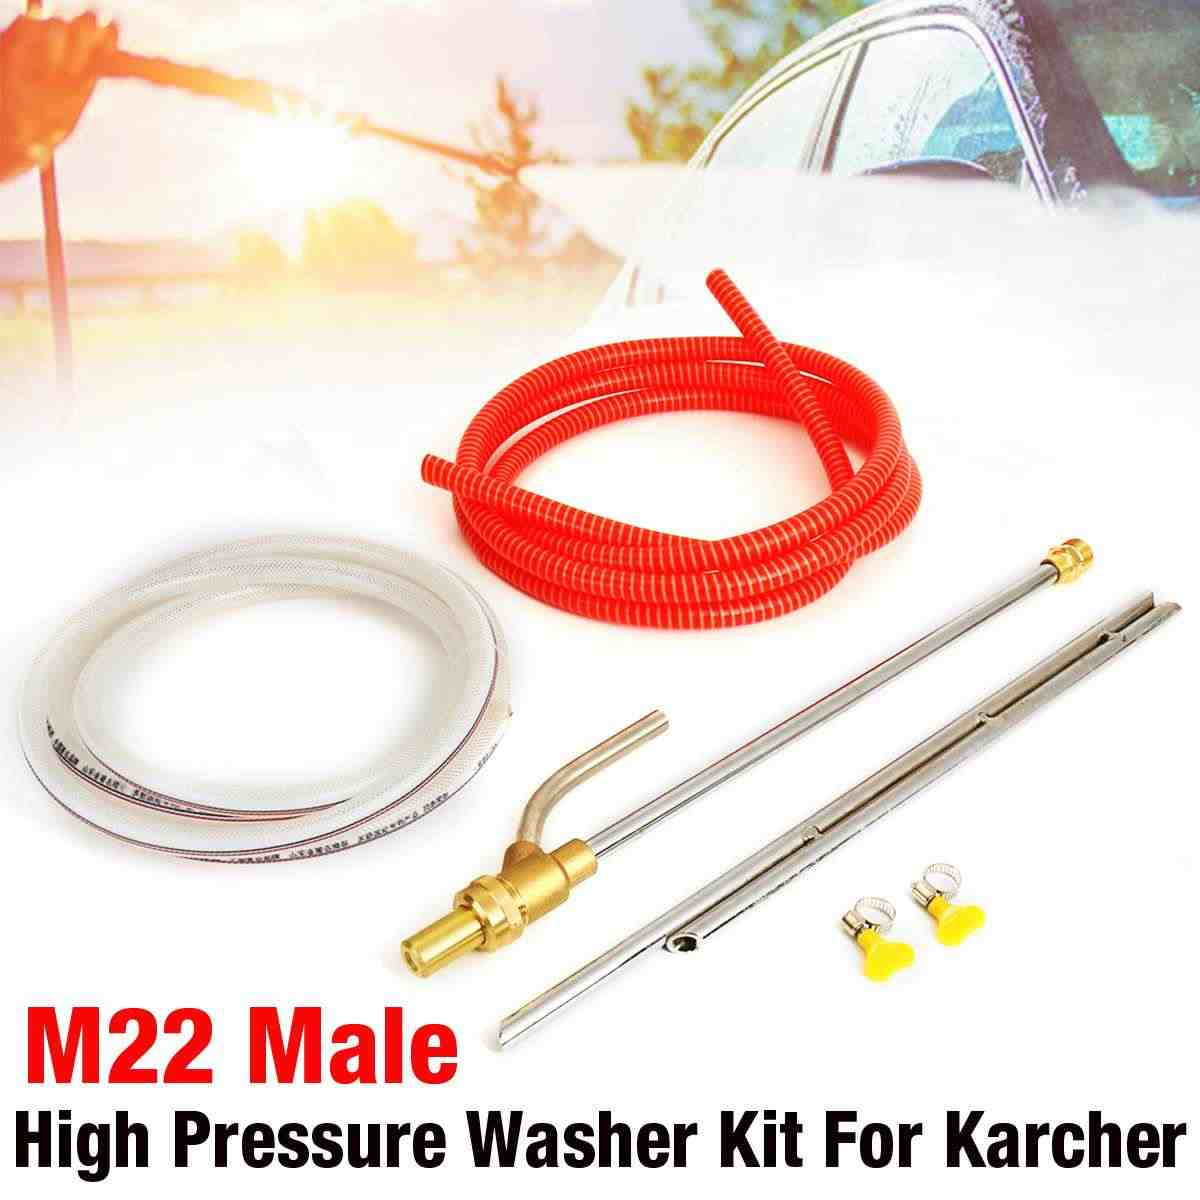 1Pcs Sandblasting Lance Sand Wet Blasters Kit M22 Male Pressure Washer Remove Rust Paint Sandblasters Kit